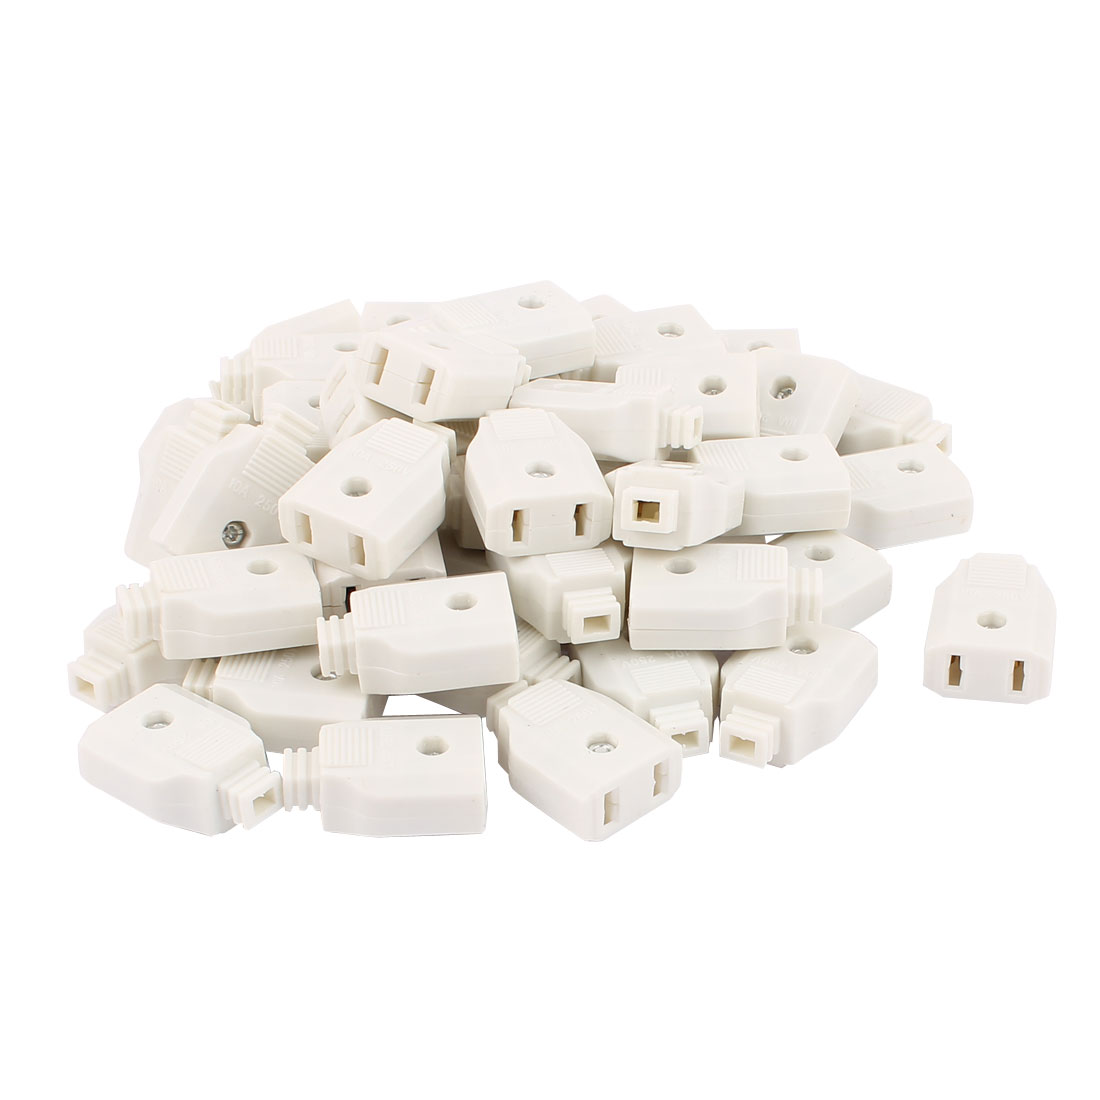 50 Pcs 2Pin Power Adapter Female Rewirable Connector Socket White